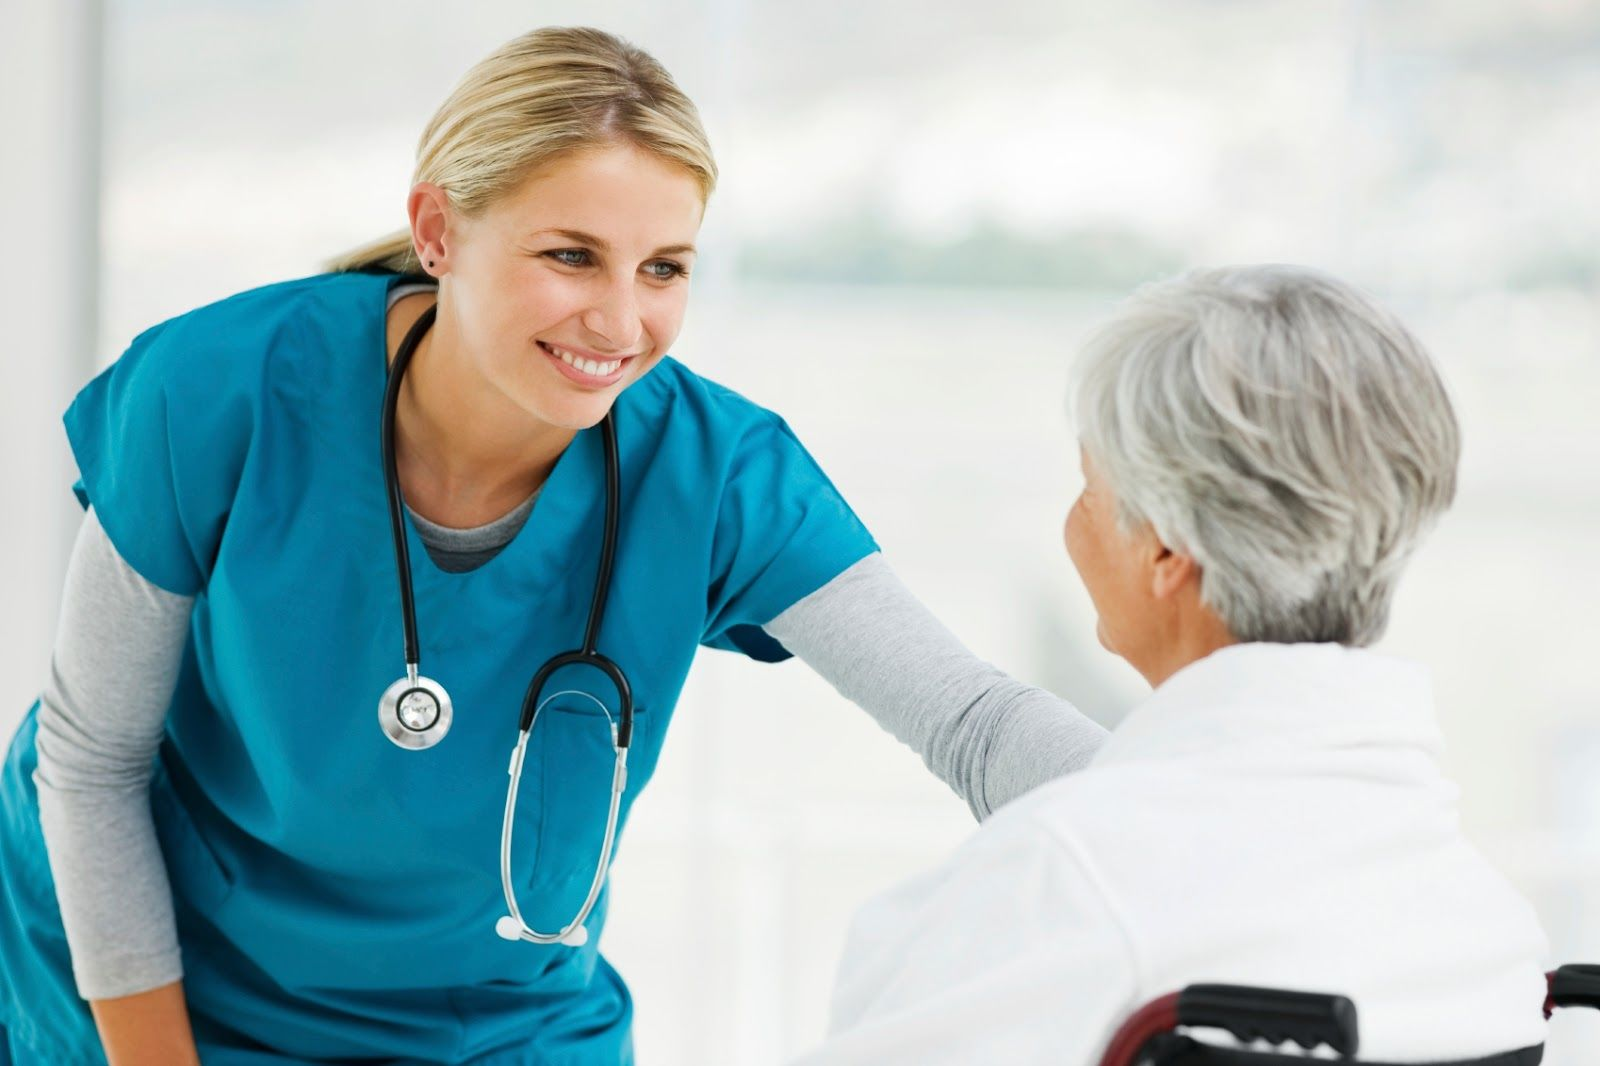 What Should A Medical Assistant Keep In Mind While Noting Patient Histories?